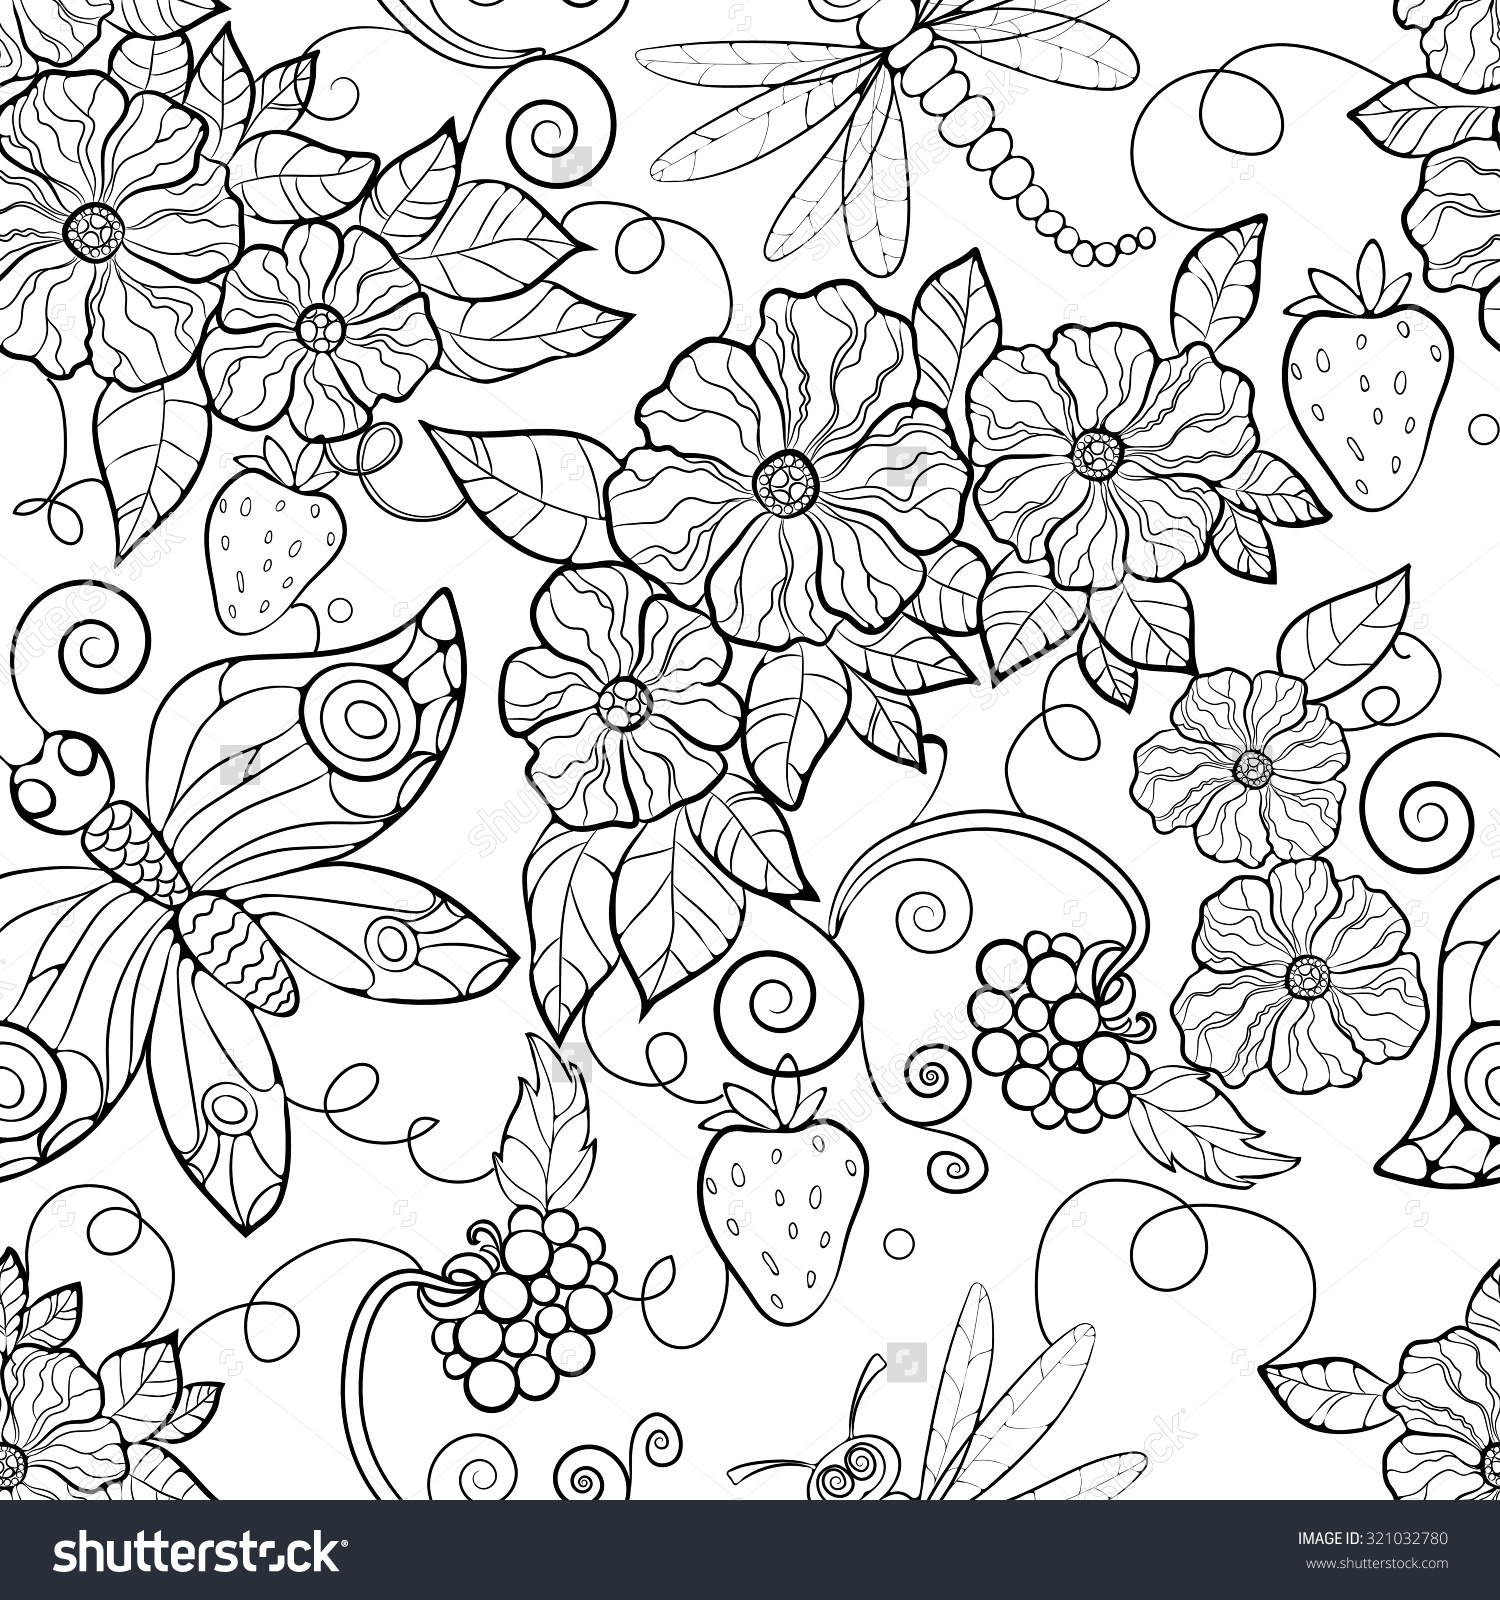 photograph regarding Printable Flower Coloring Pages identified as Totally free Printable Flower Coloring Web pages For Grown ups at